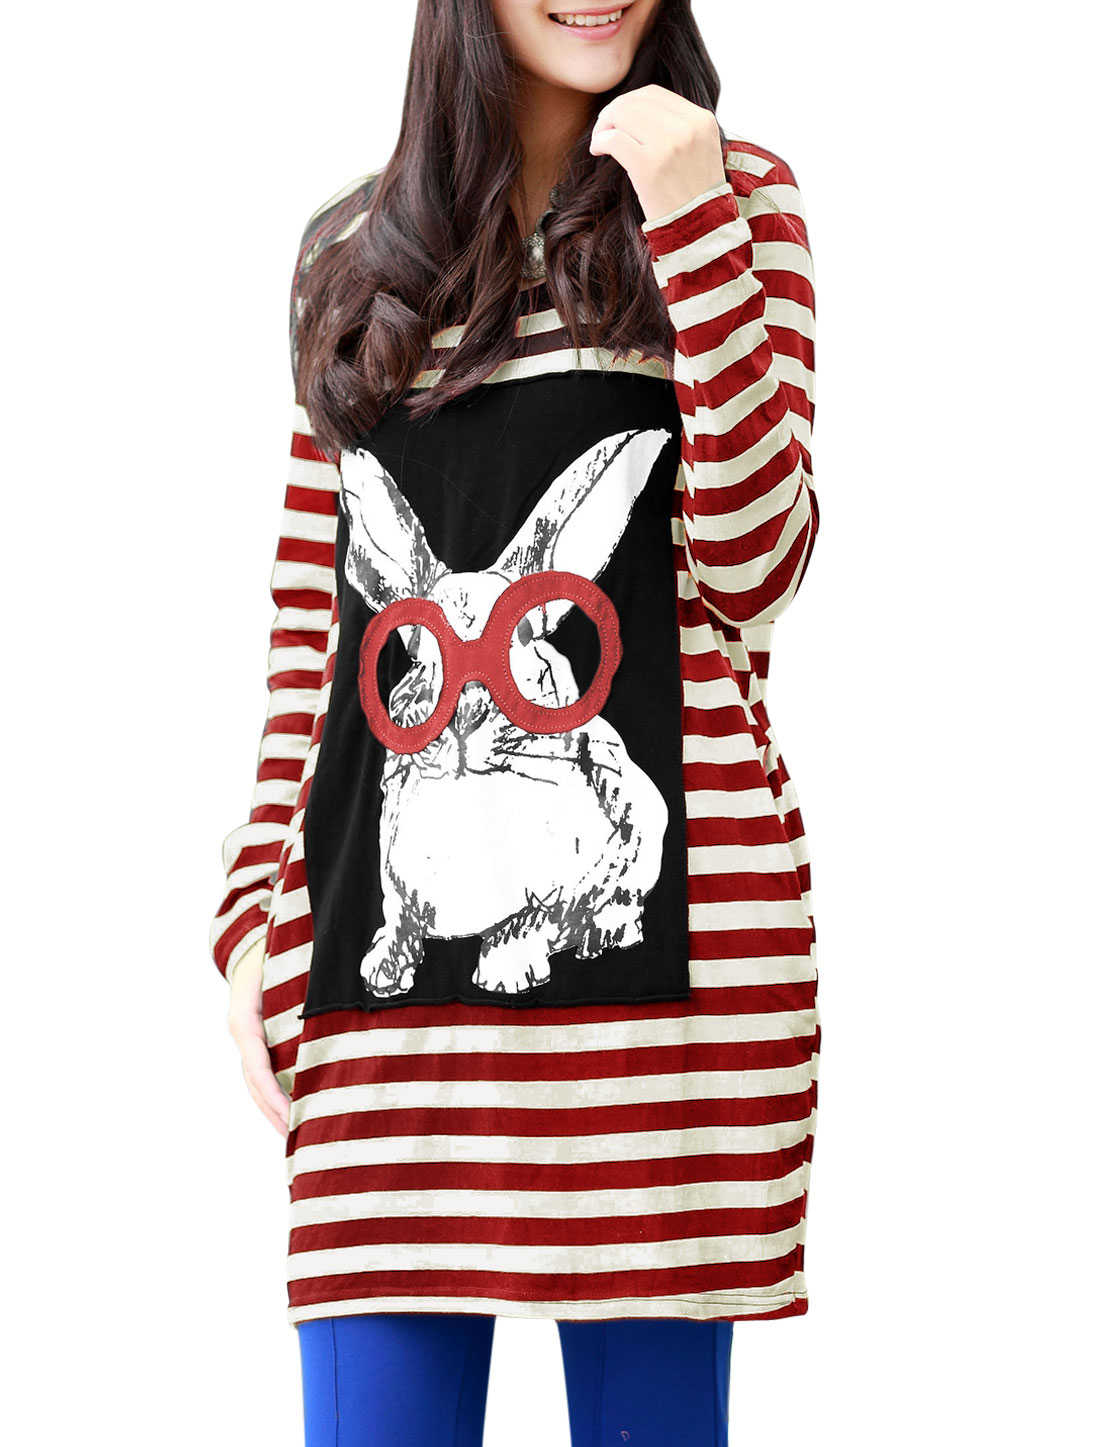 Motherhood Two Side Pockets Stripes Rabbit Printed Stretchy T-Shirt Red Beige L